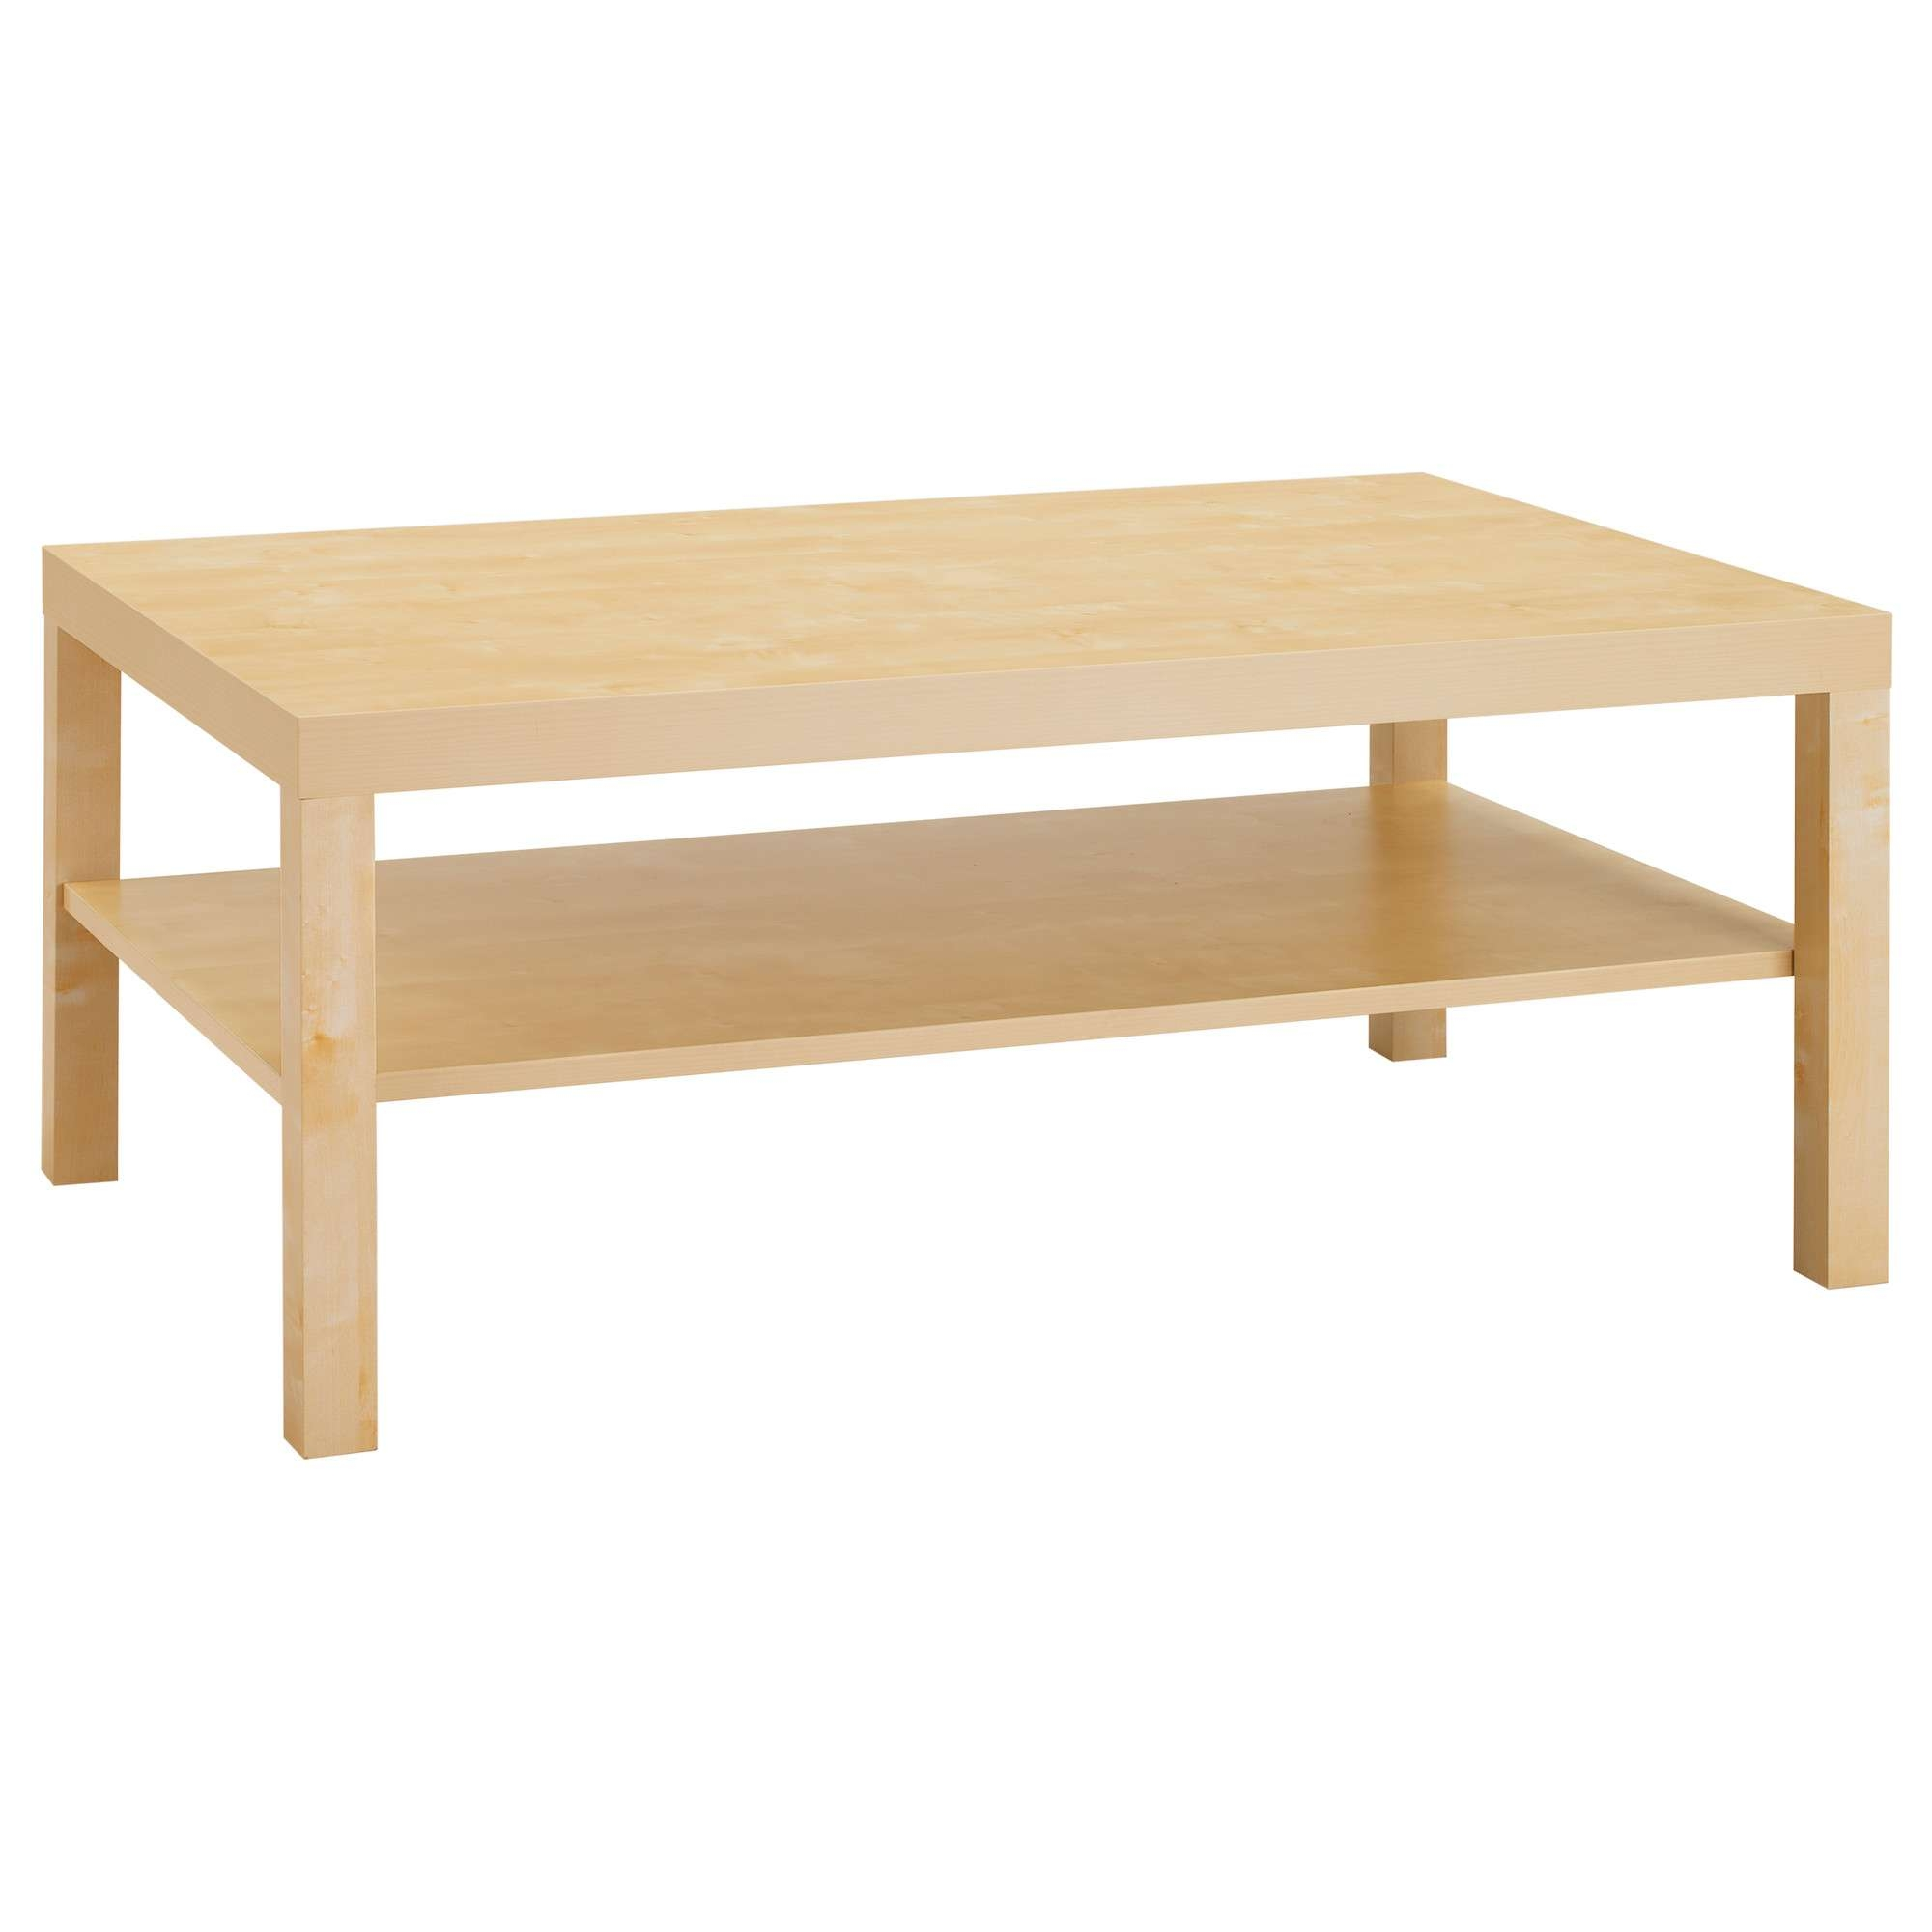 2017 Small Wood Coffee Tables For Lack Coffee Table – White – Ikea (View 9 of 20)